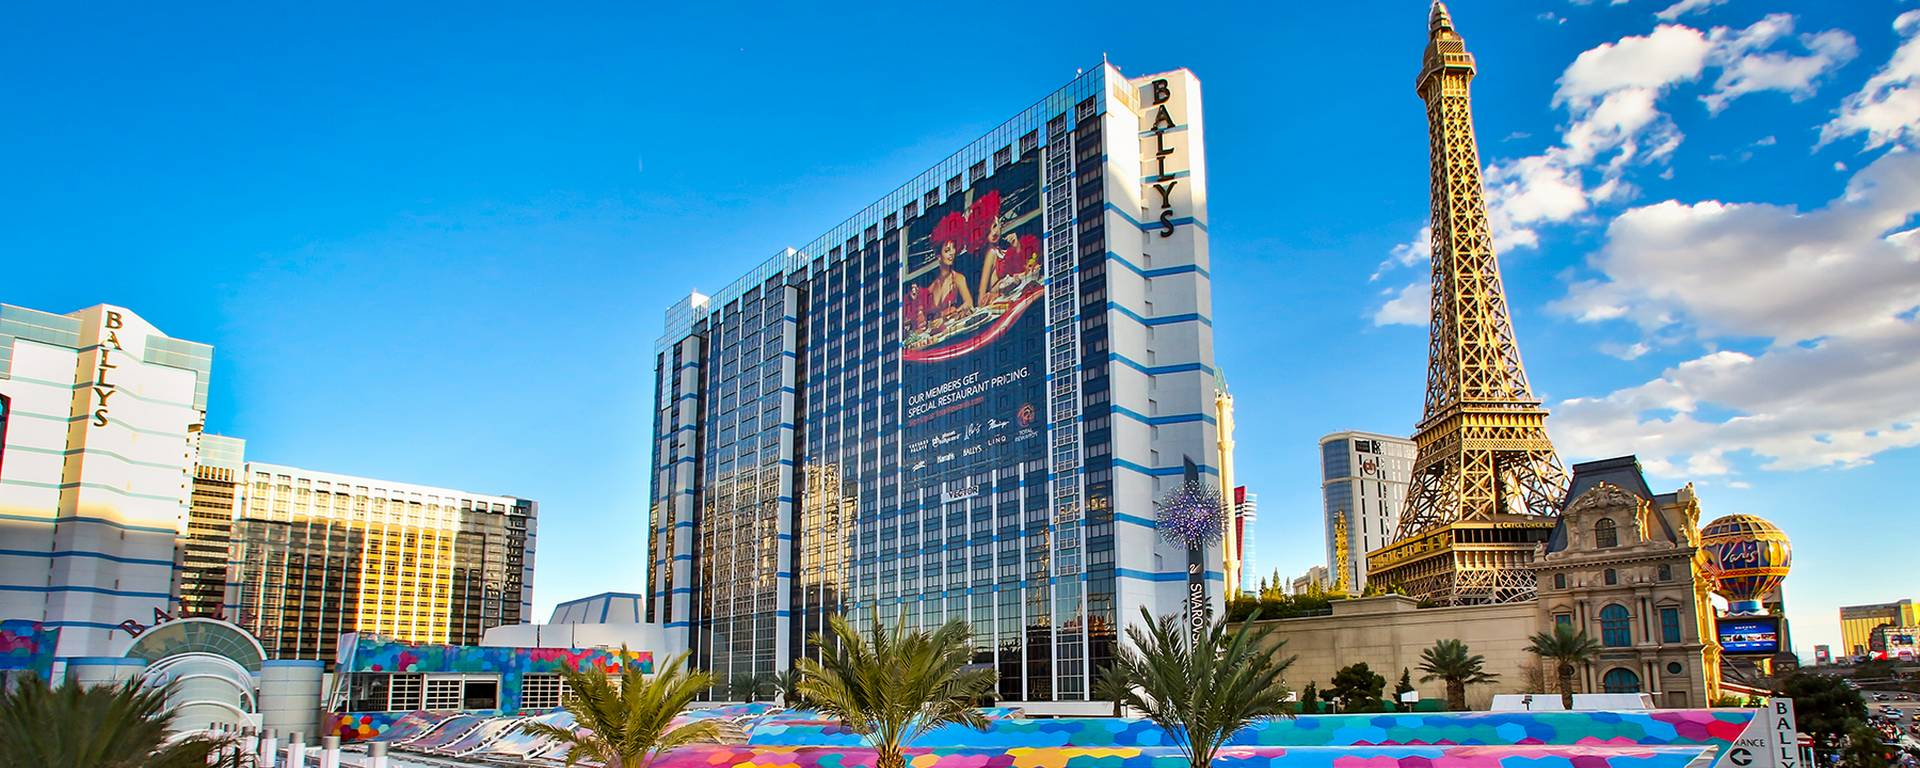 Bally's Hotel Las Vegas Deals & Promo Codes